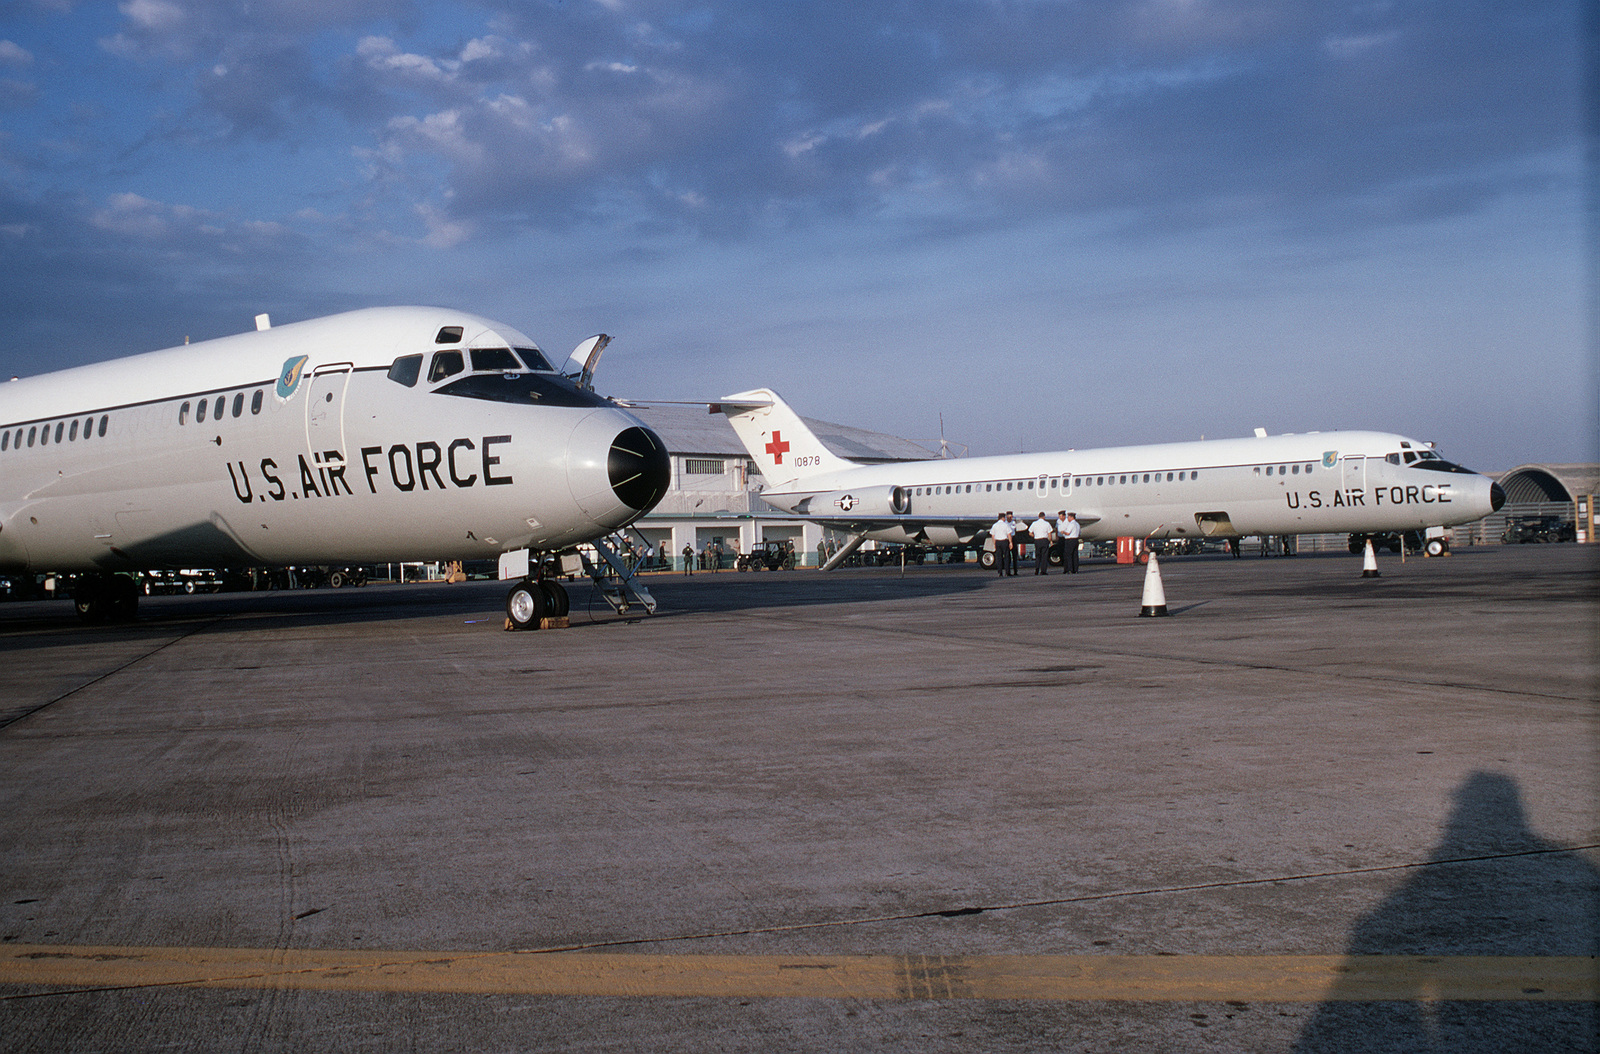 C-9 Nightingale medical evacuation aircraft on the flight line at Tan Son Nhut Air Base. The aircraft will be used to fly the American prisoners of war released by the Viet Cong at Loc Ninh, South Vietnam to Clark Air Base in the Philippines